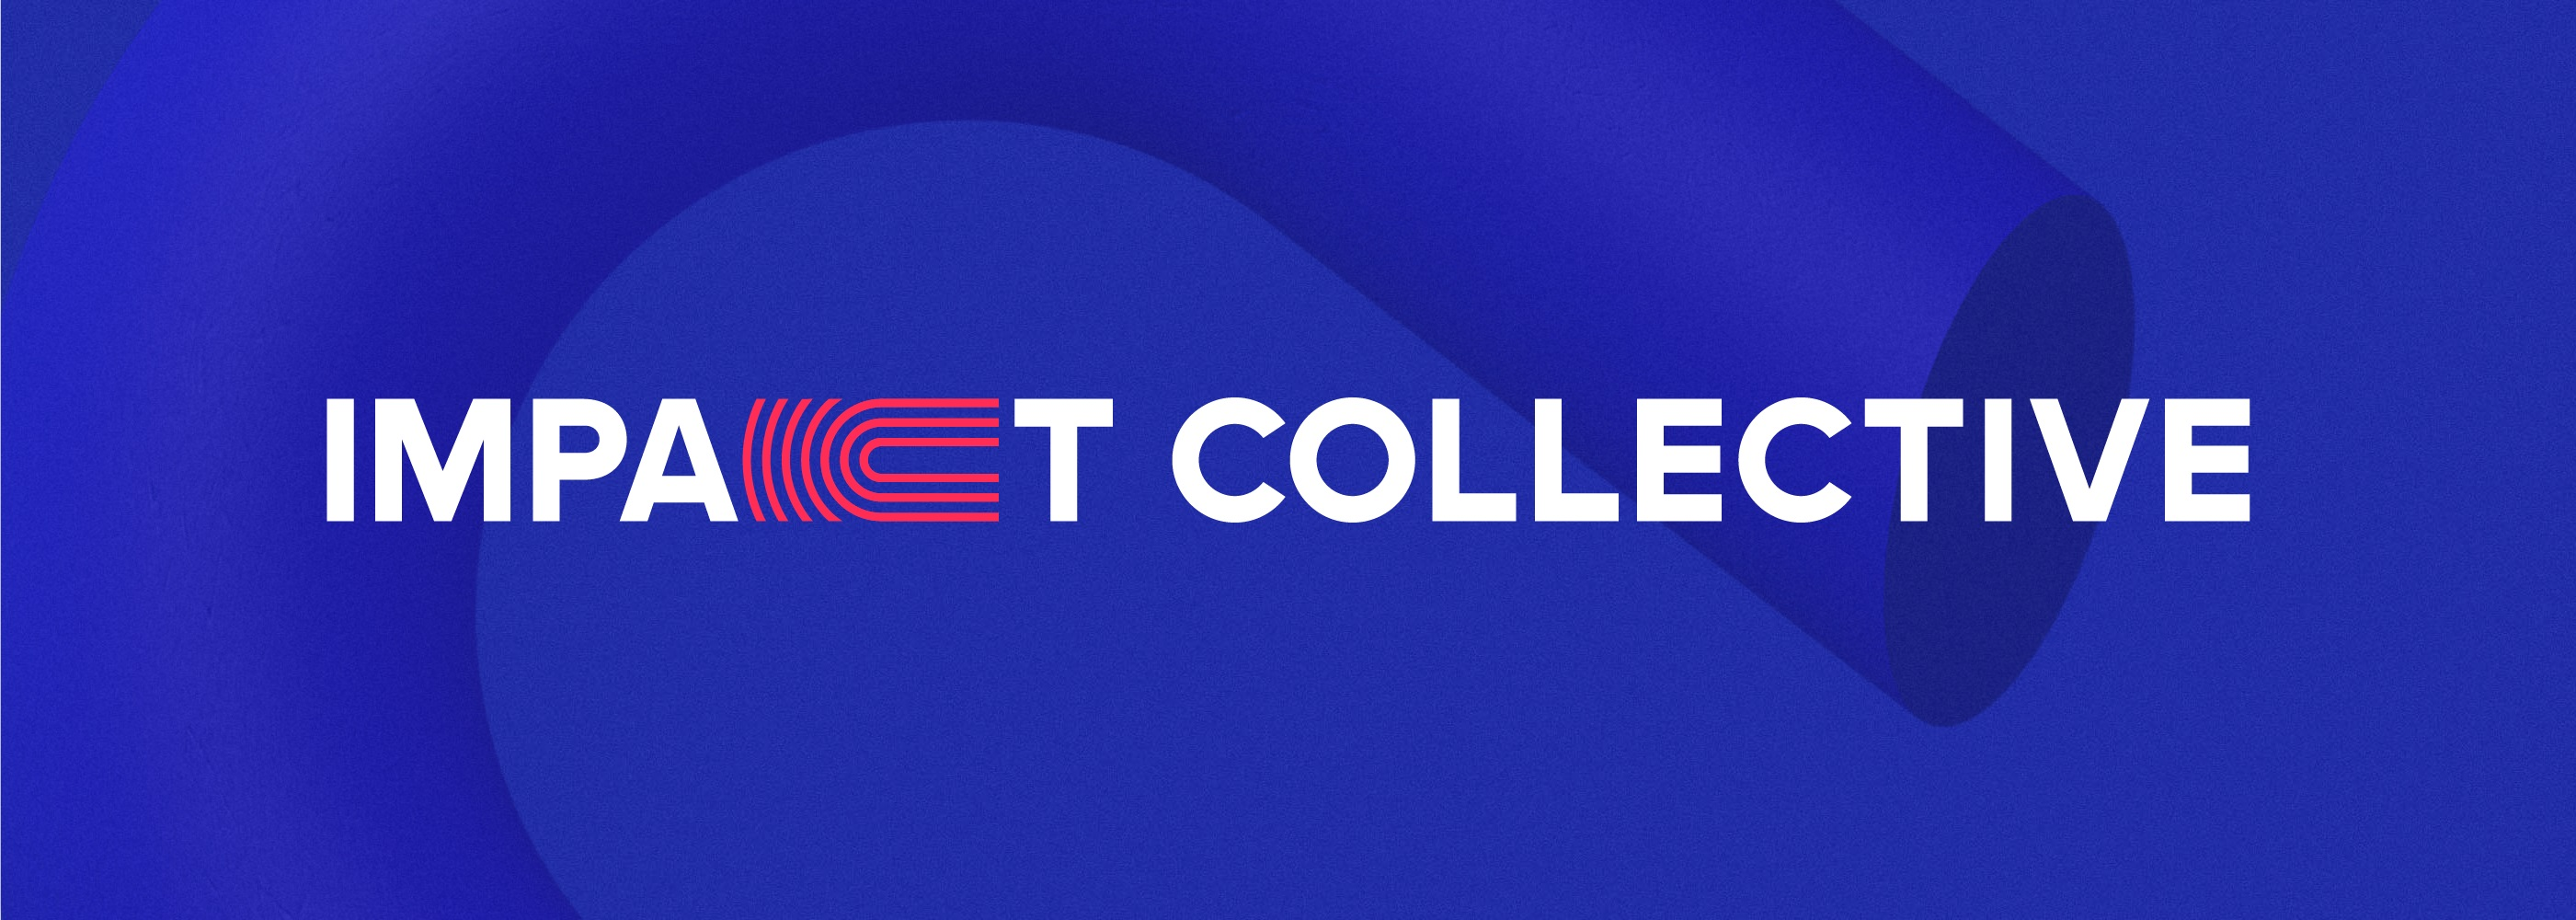 Top 10 Finalists of 2020 Impact Collective Announced